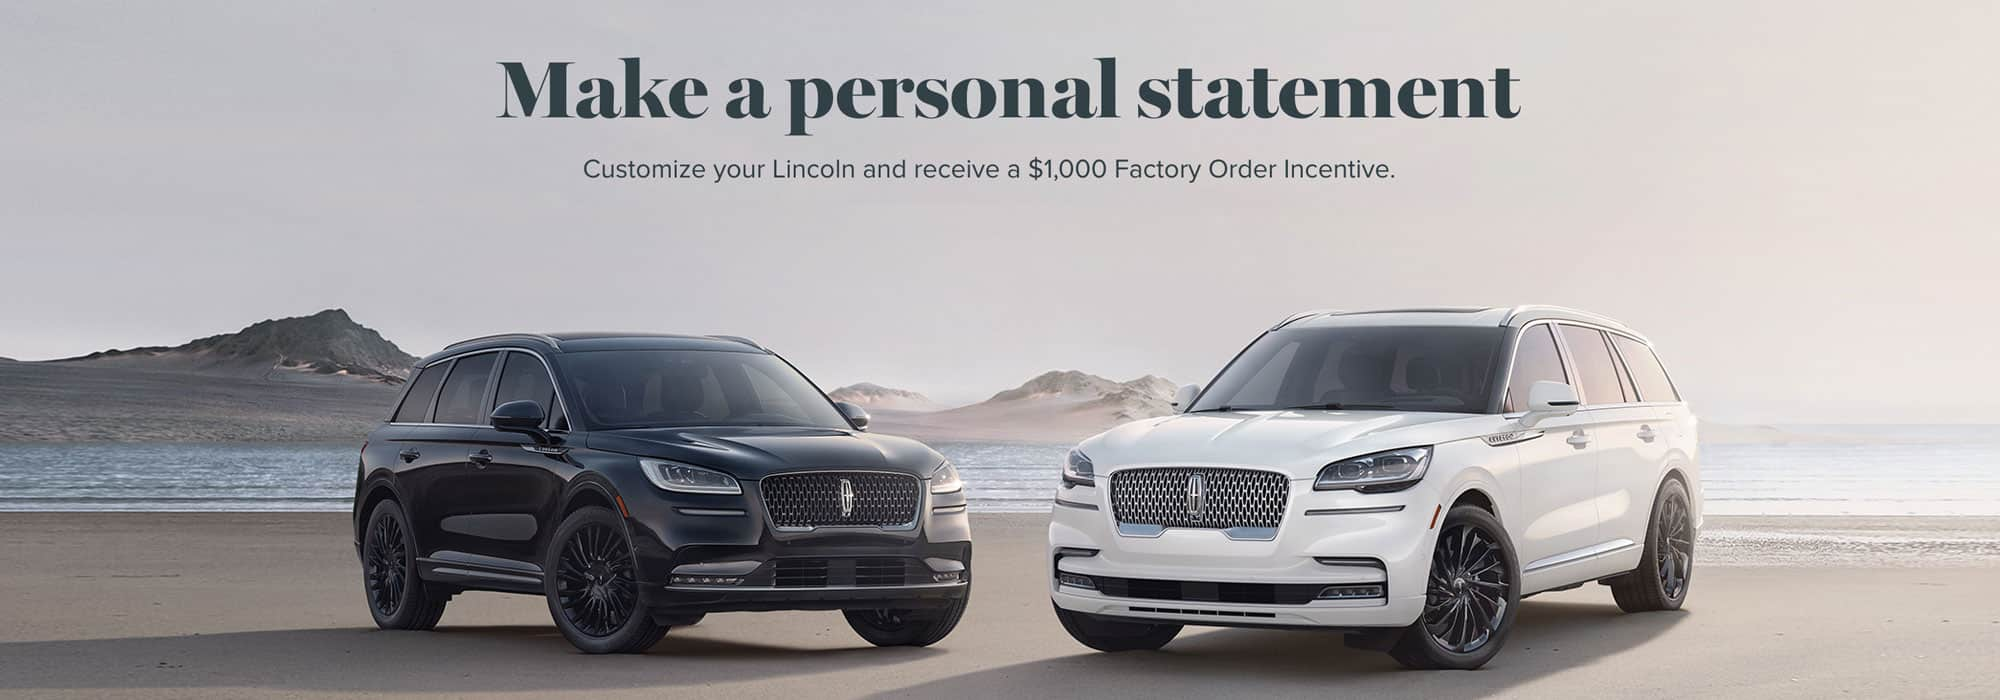 lincoln-offer-2000x700